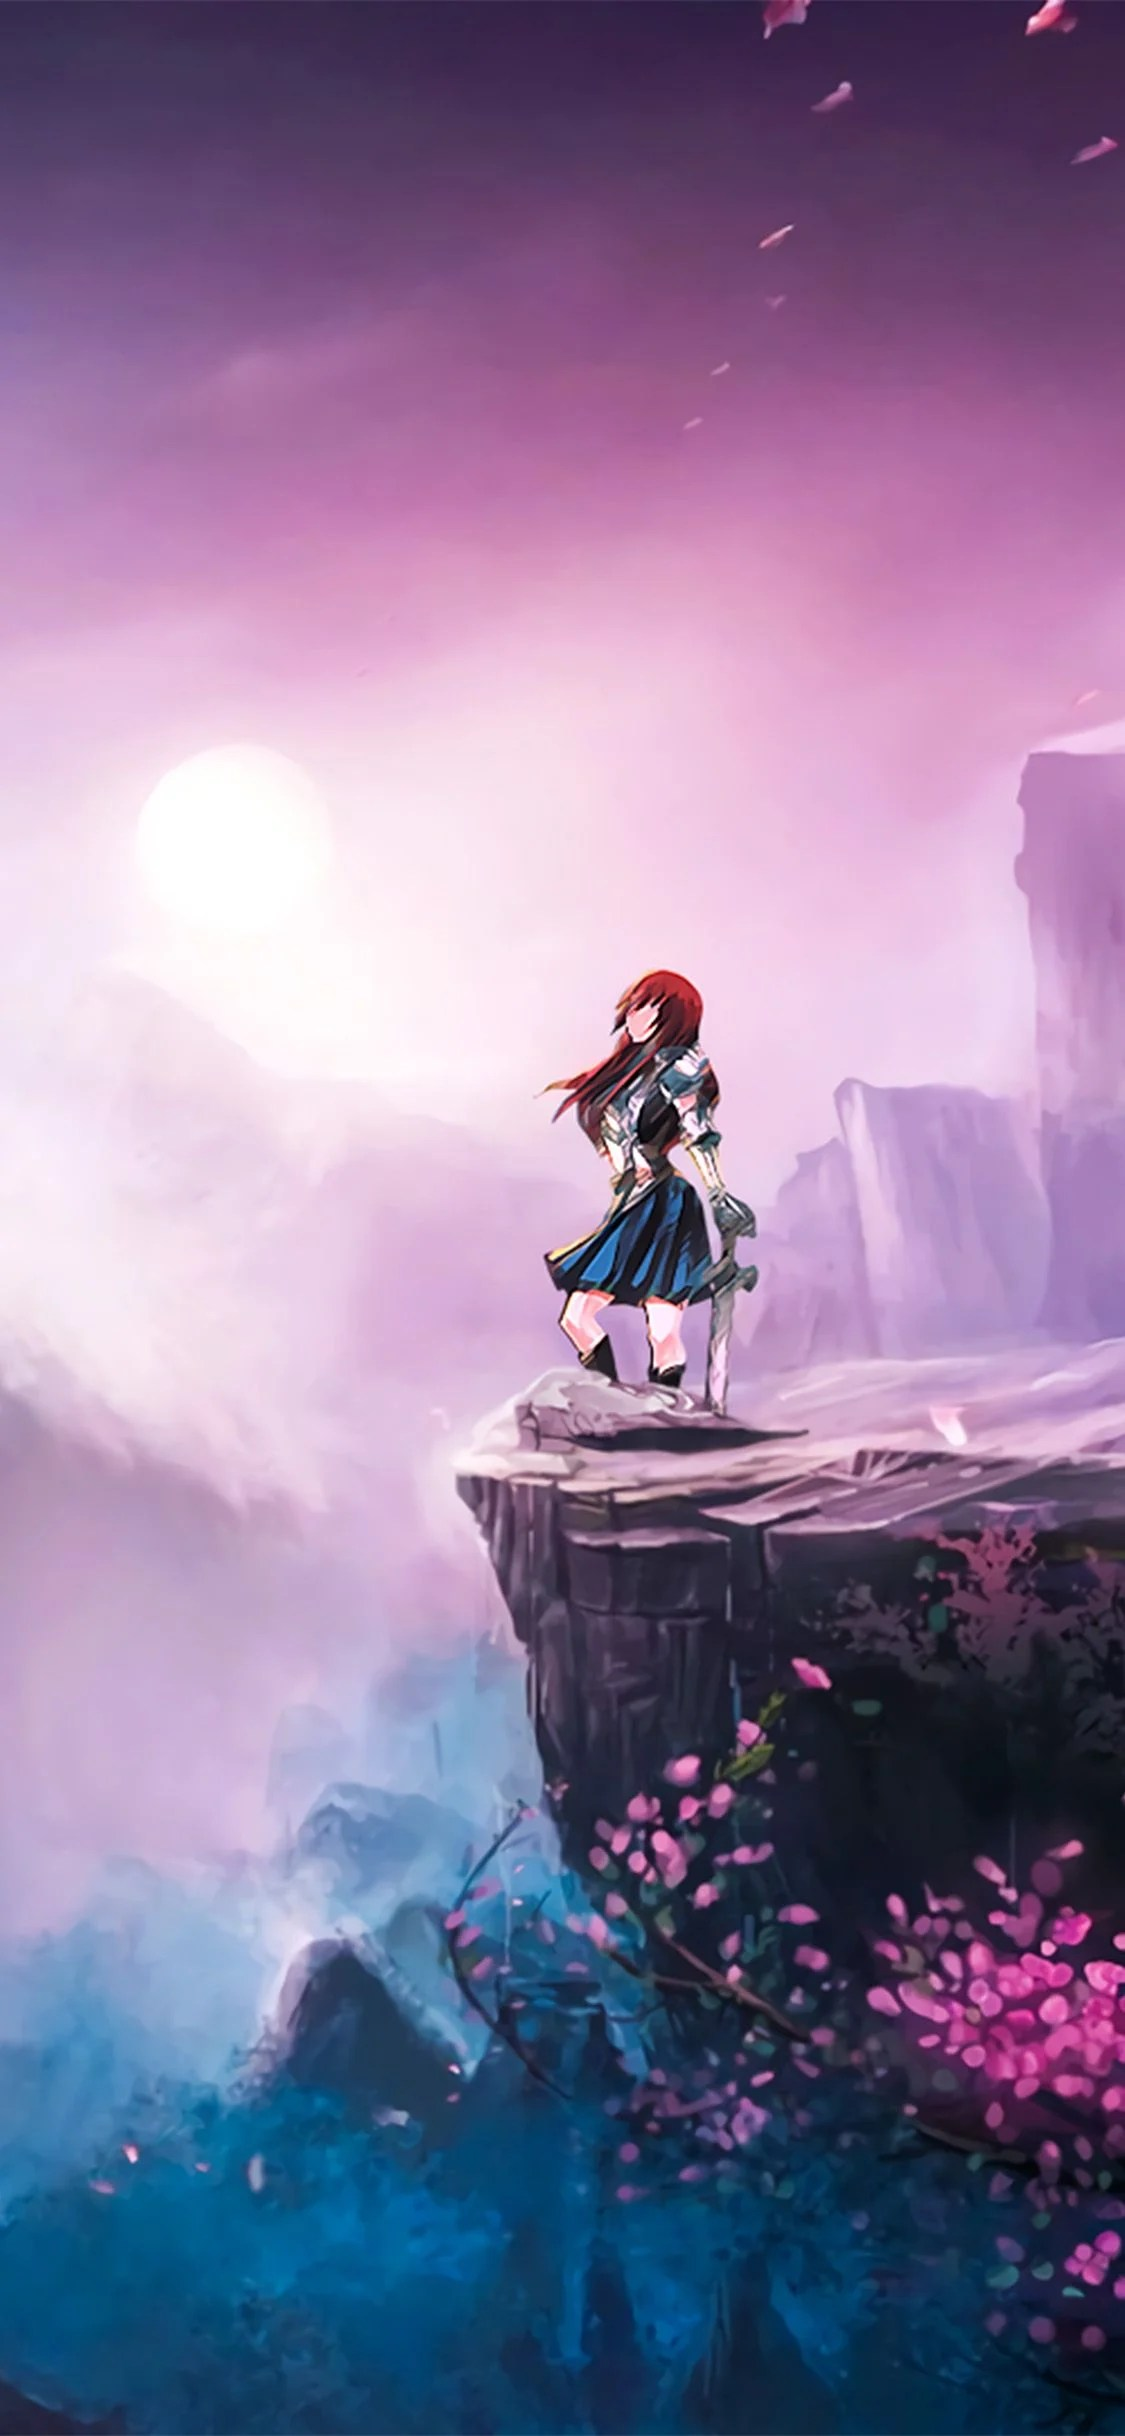 4k Anime Iphone 12 Wallpapers Wallpaper Cave